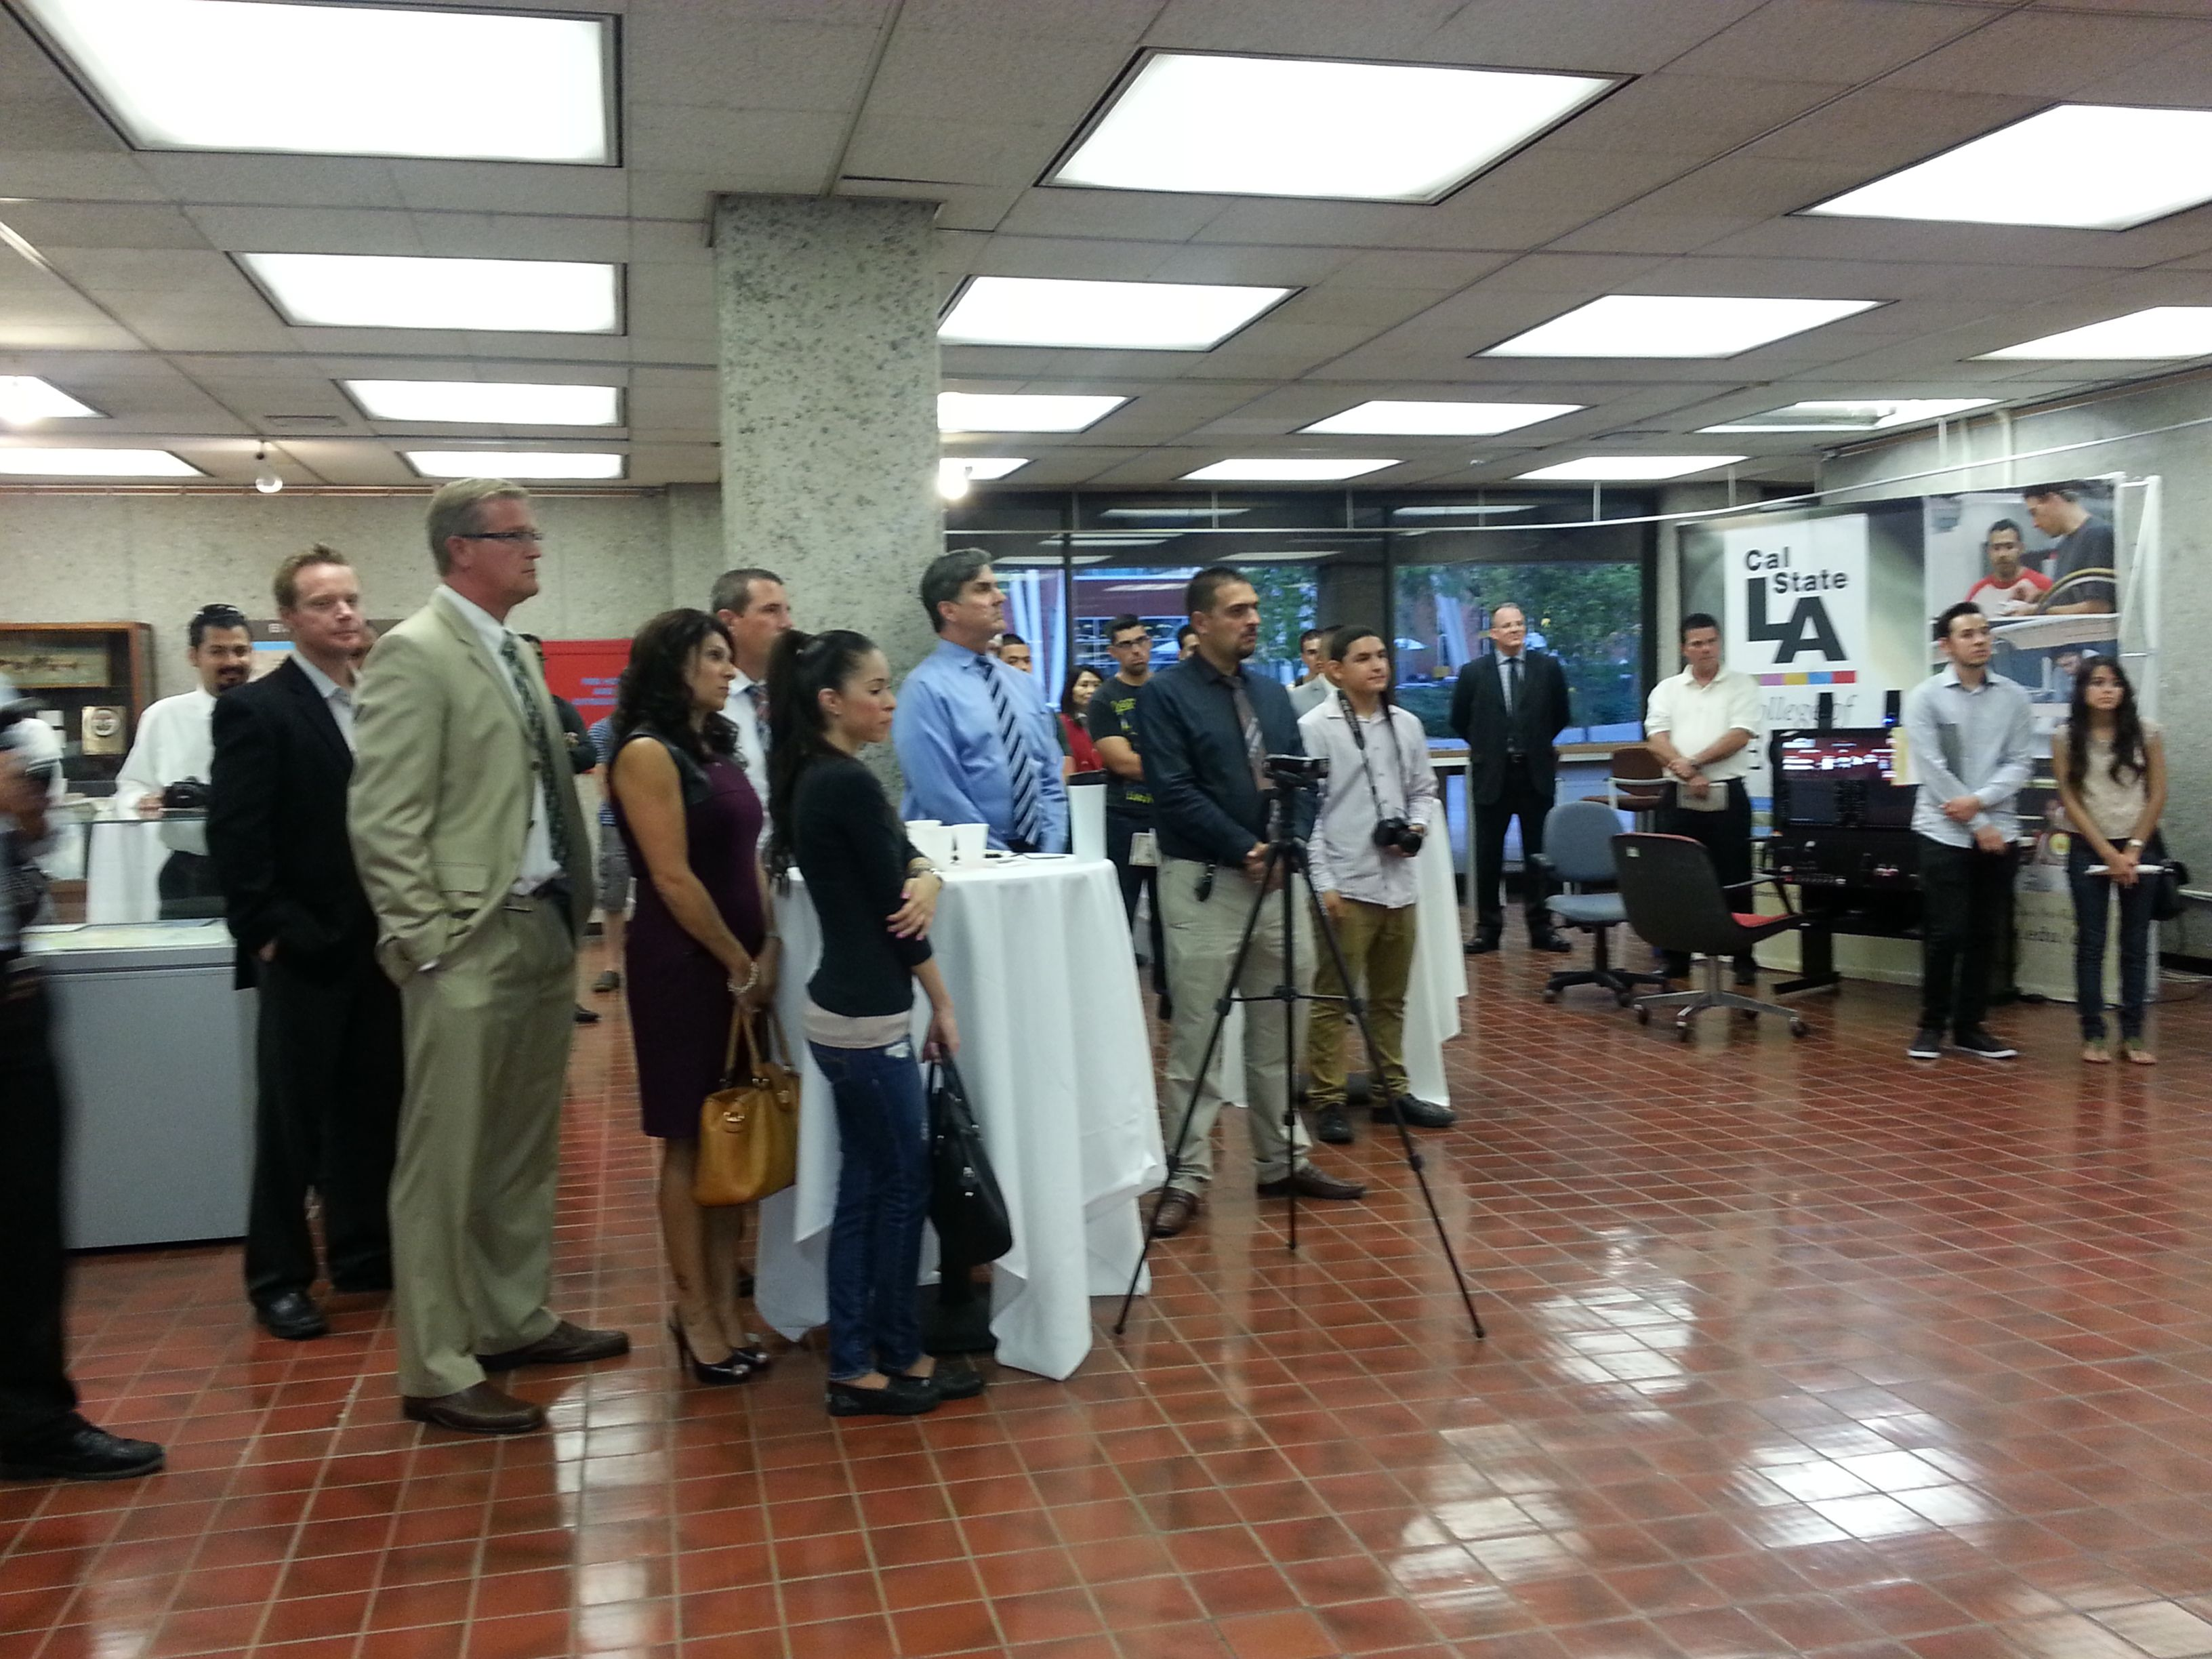 More than 80 guests attended the opening reception for the